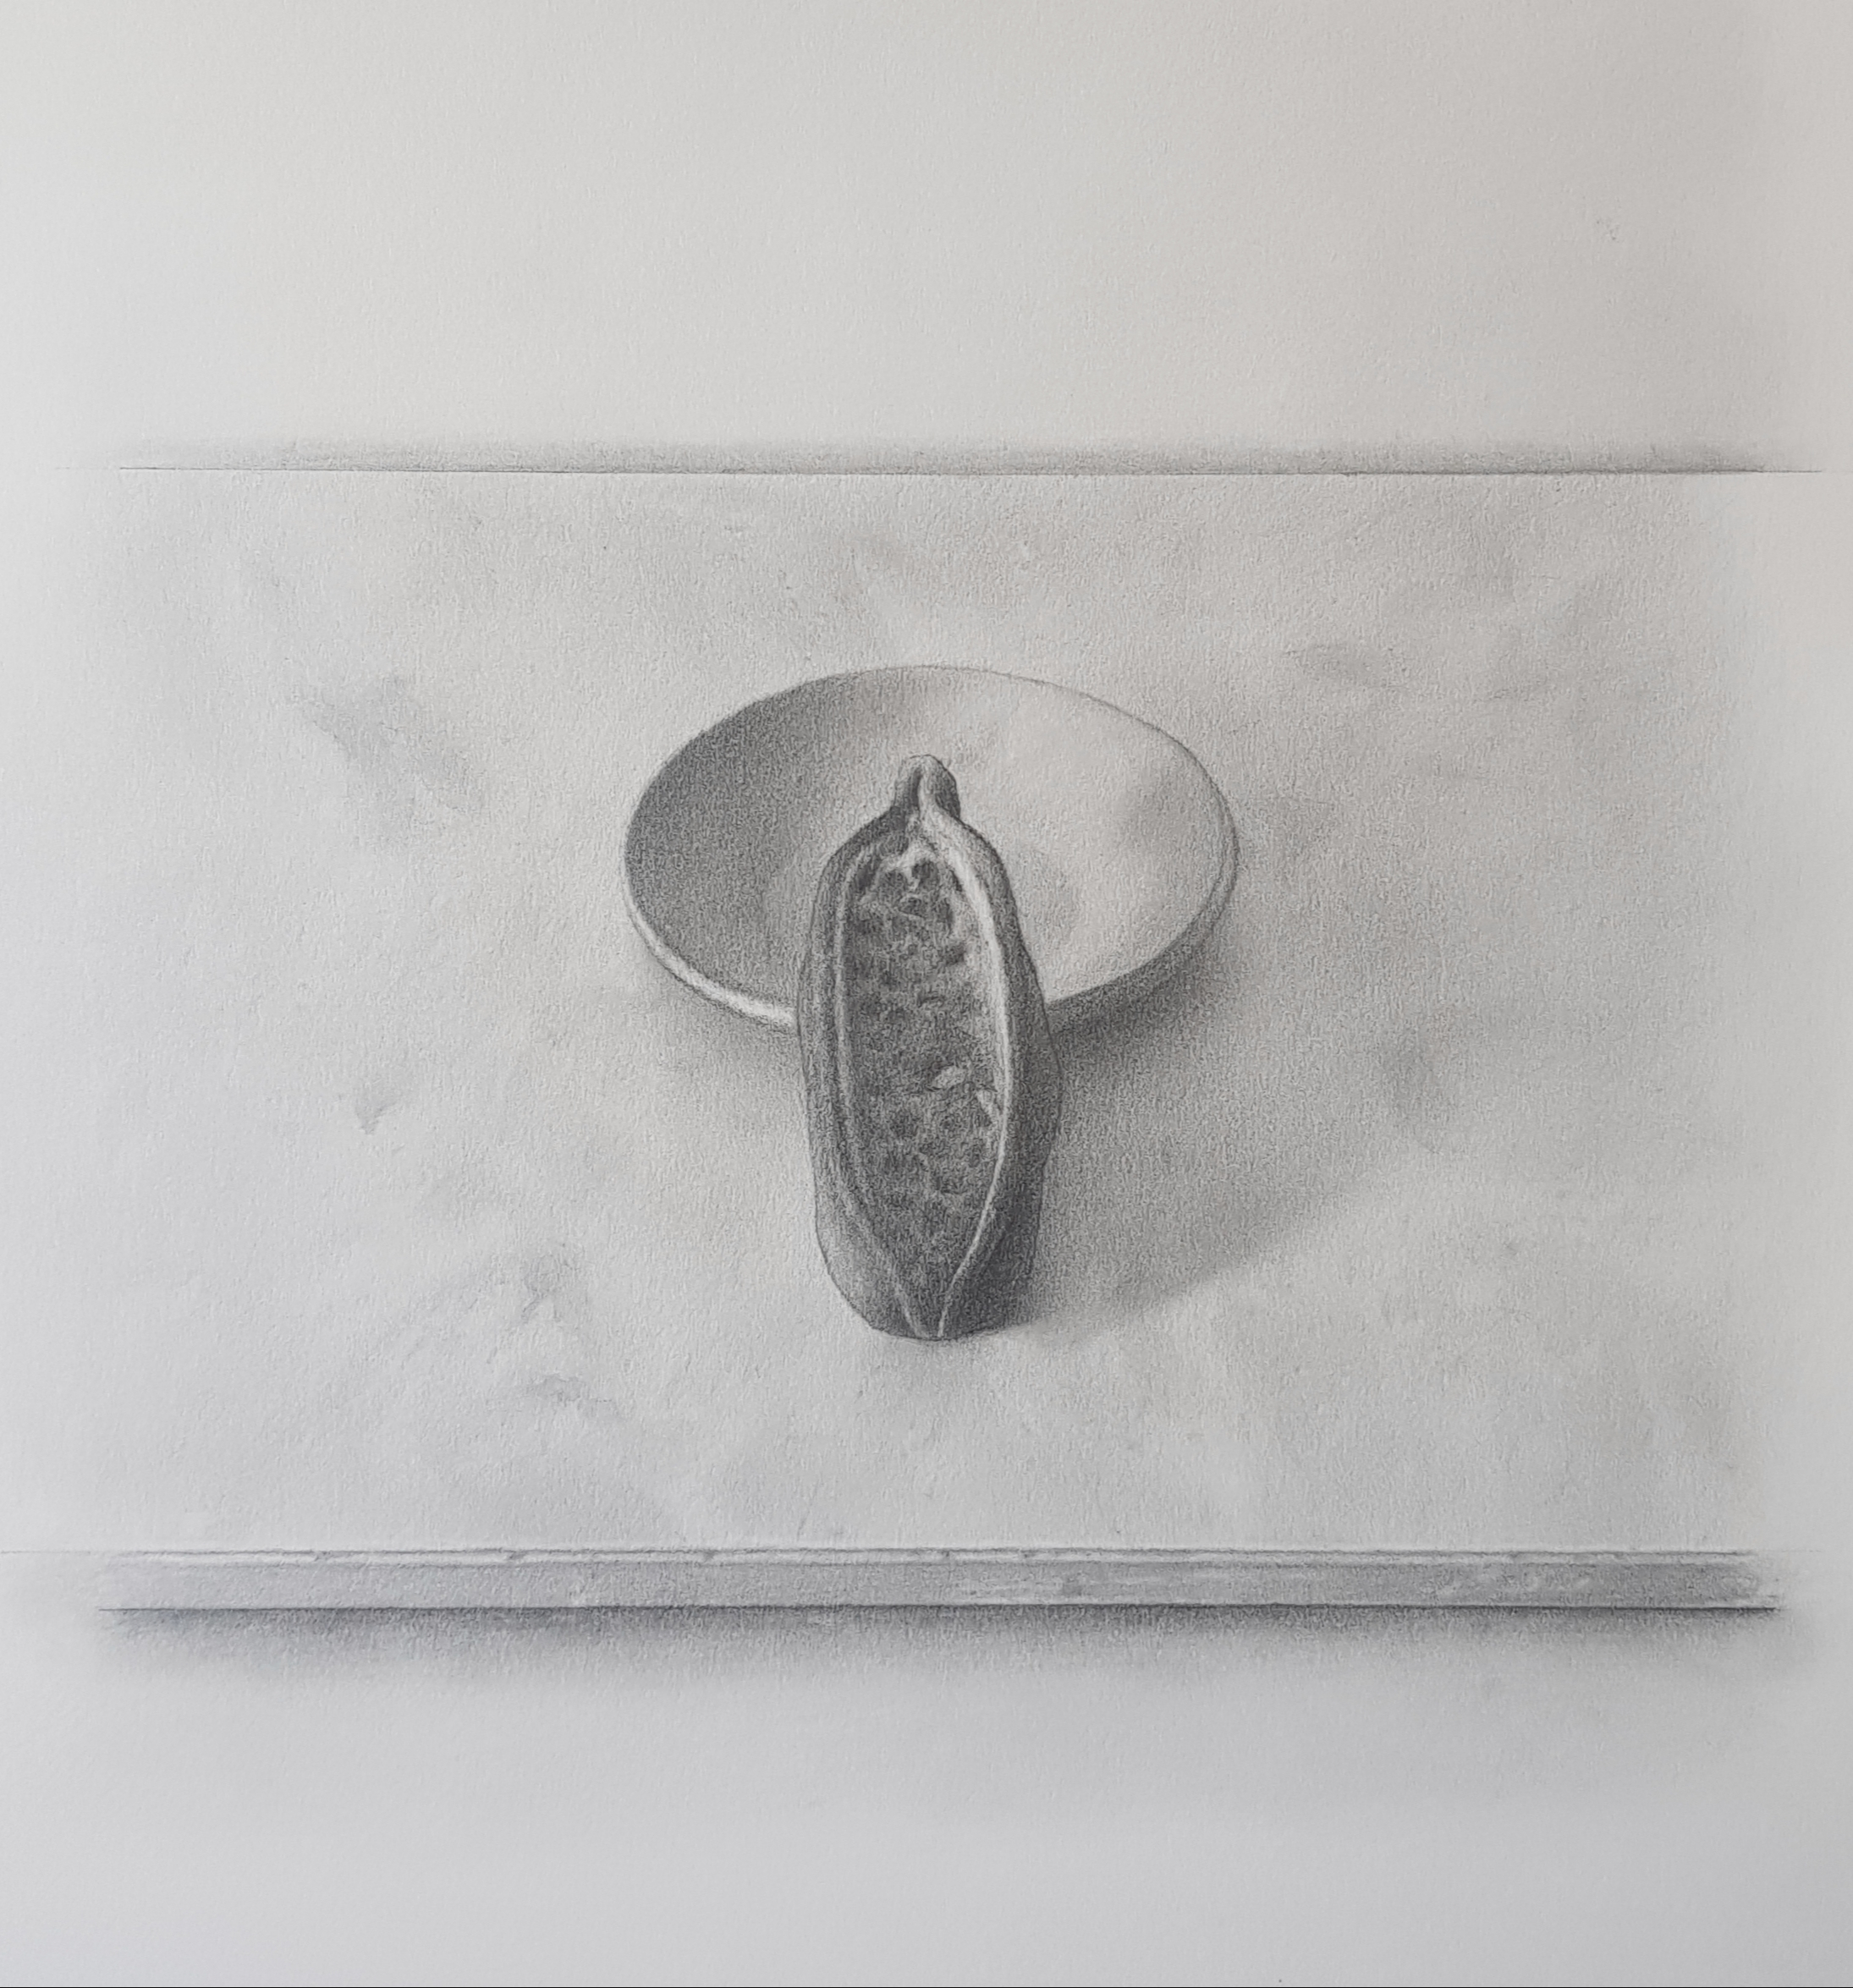 Brachychiton seed pod, pencil on paper, 2020